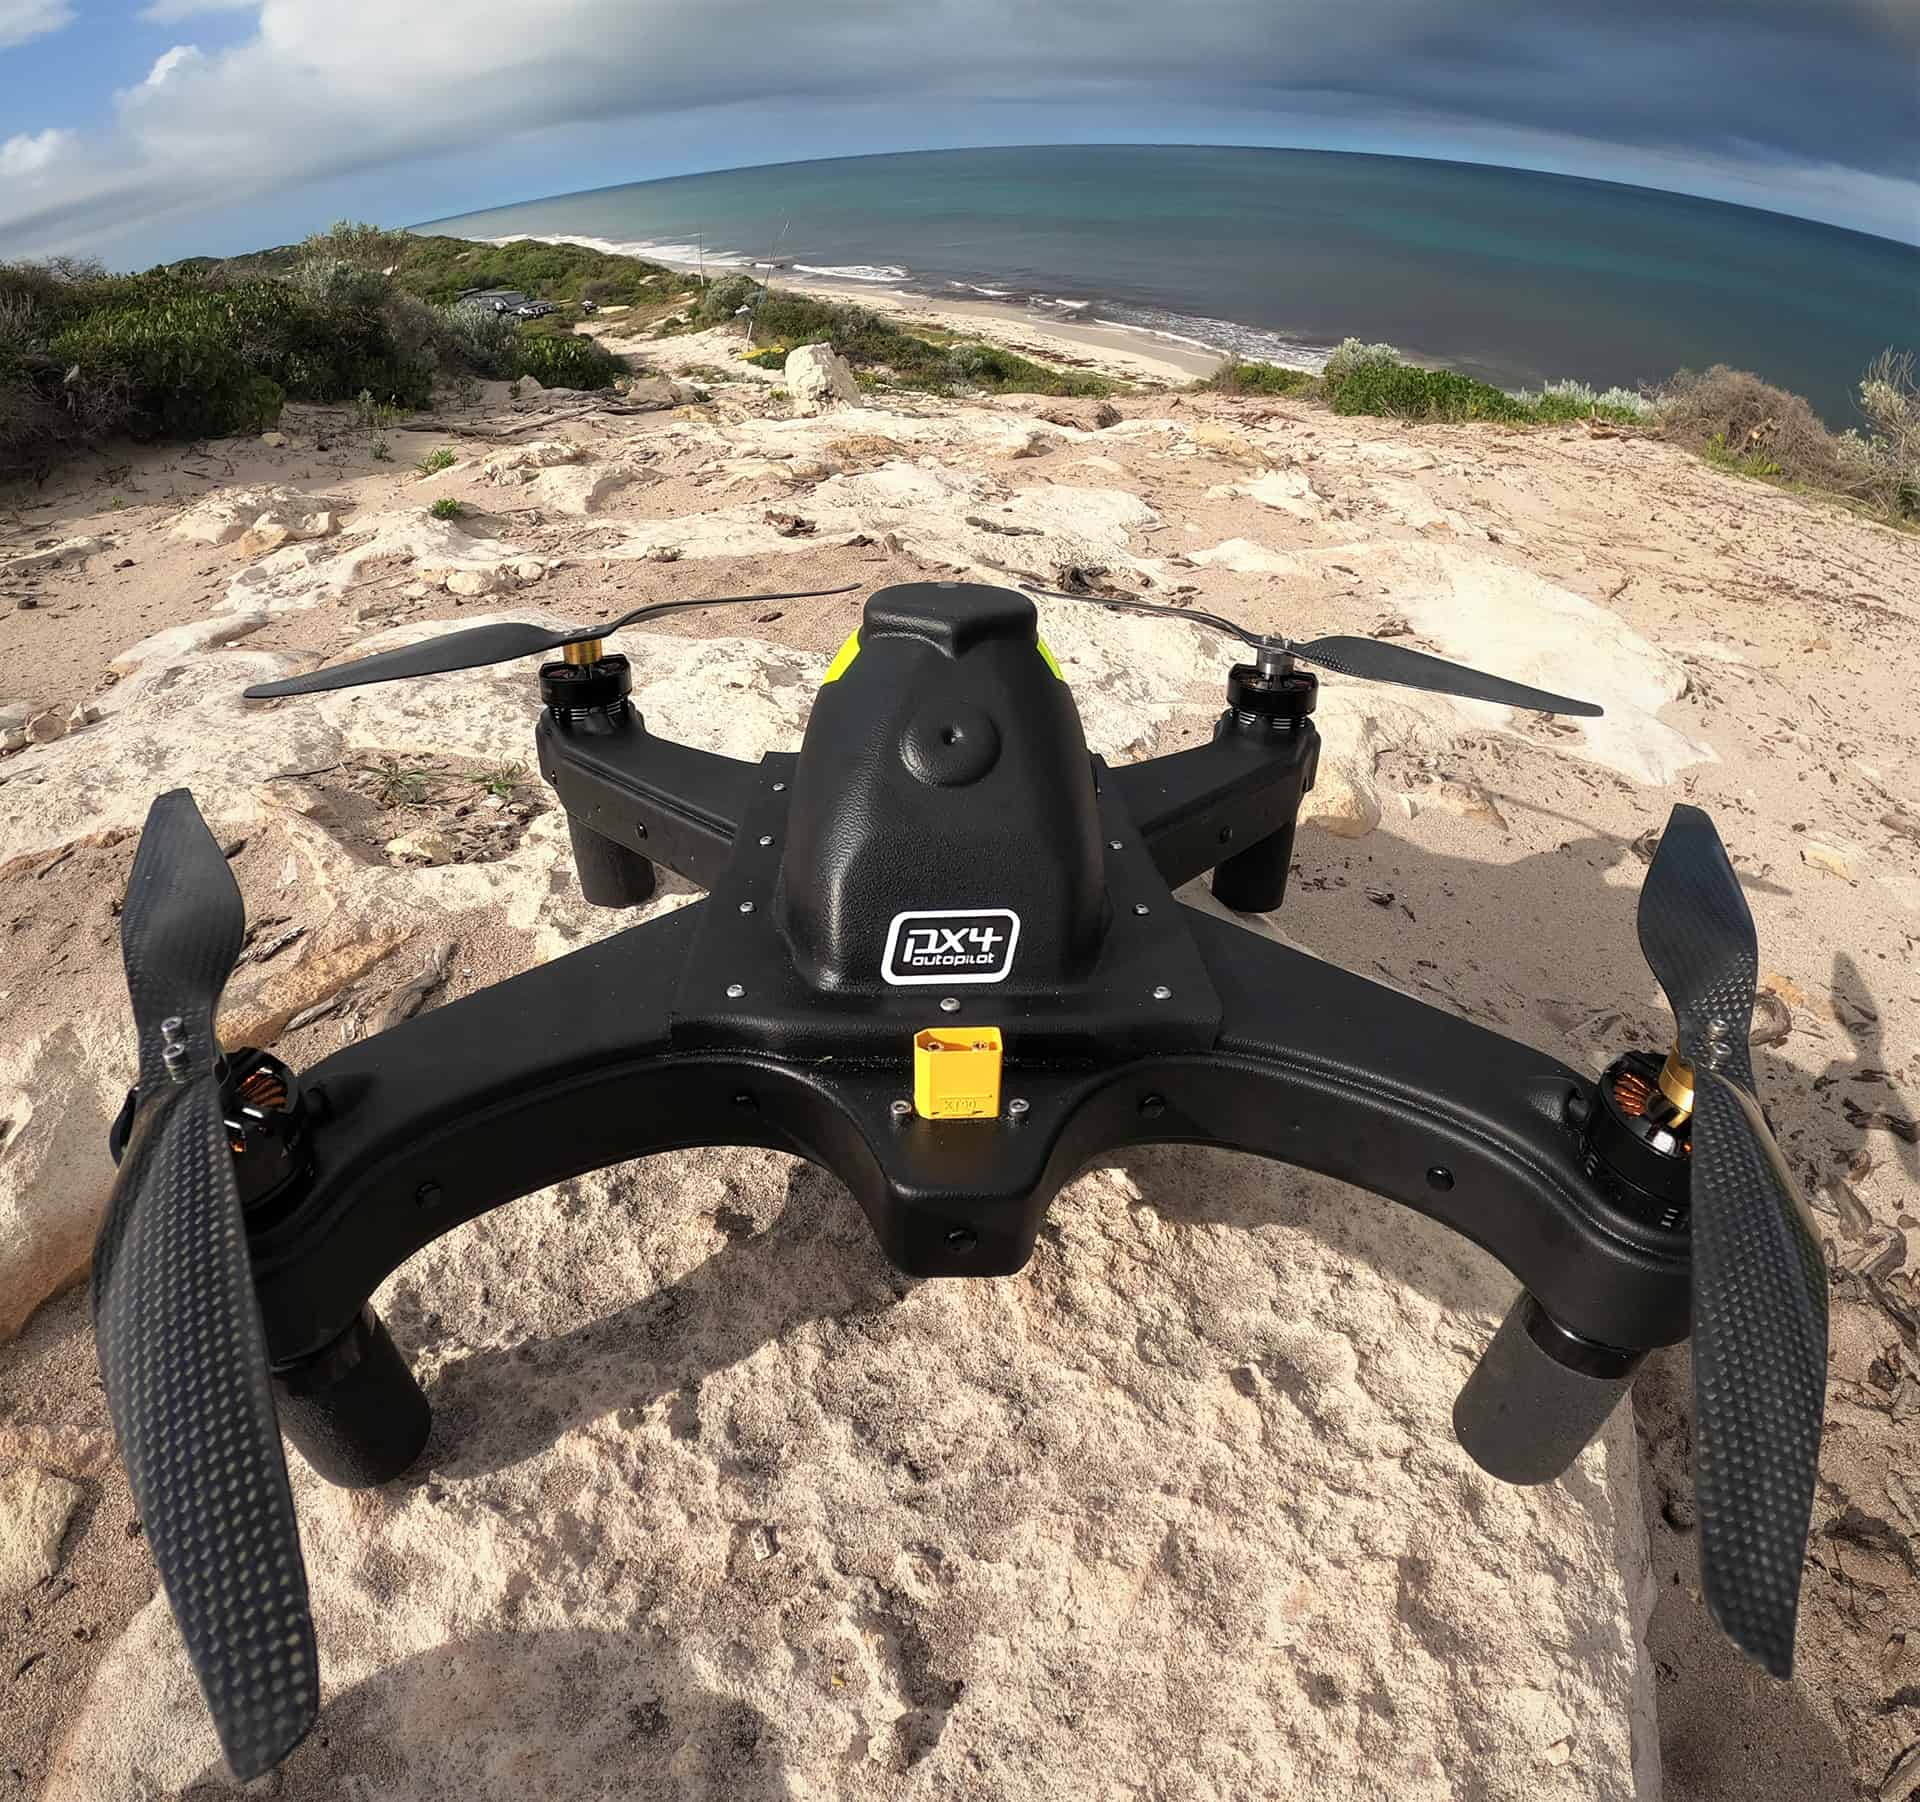 WaterProof Drone for Fishing – Choosing one that suits your needs and avoid expensive mistakes